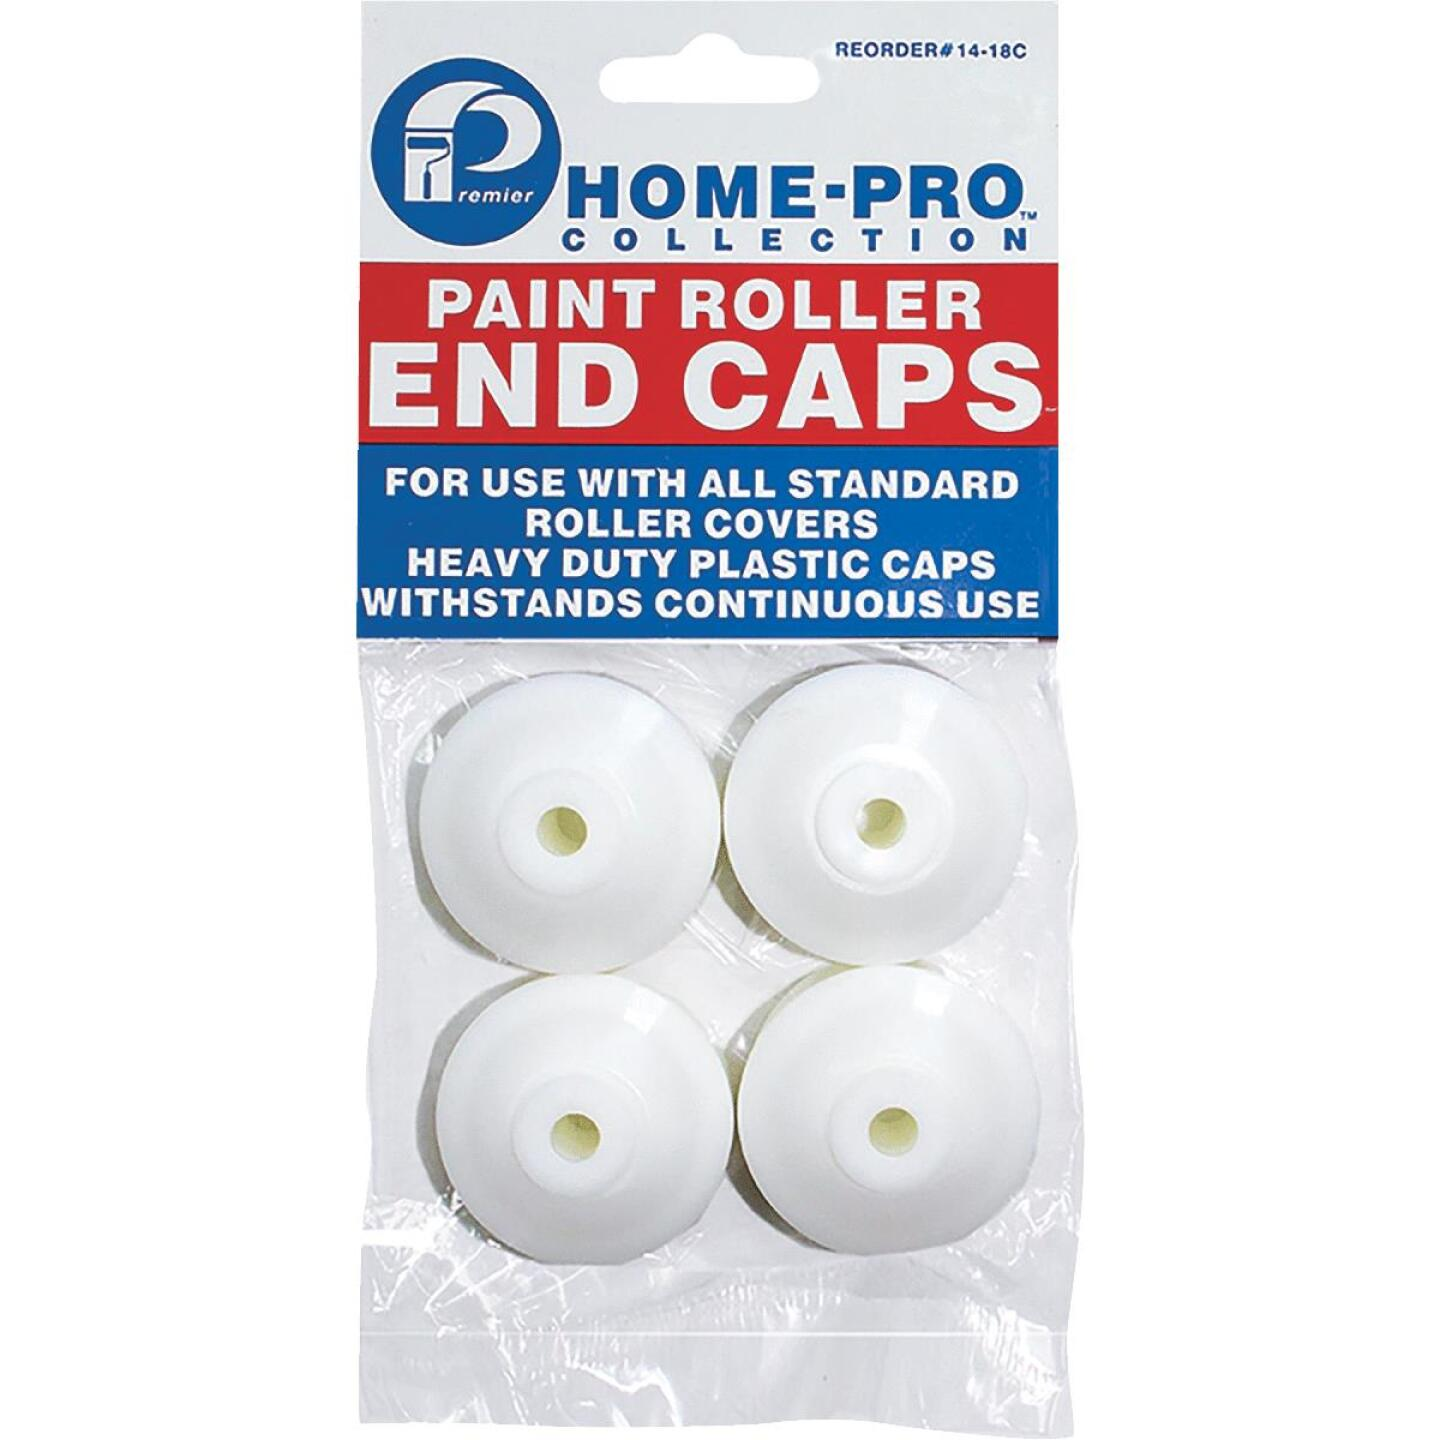 Premier Home-Pro 1-1/2 In. Plastic Paint Roller End Caps (4-Pack) Image 1